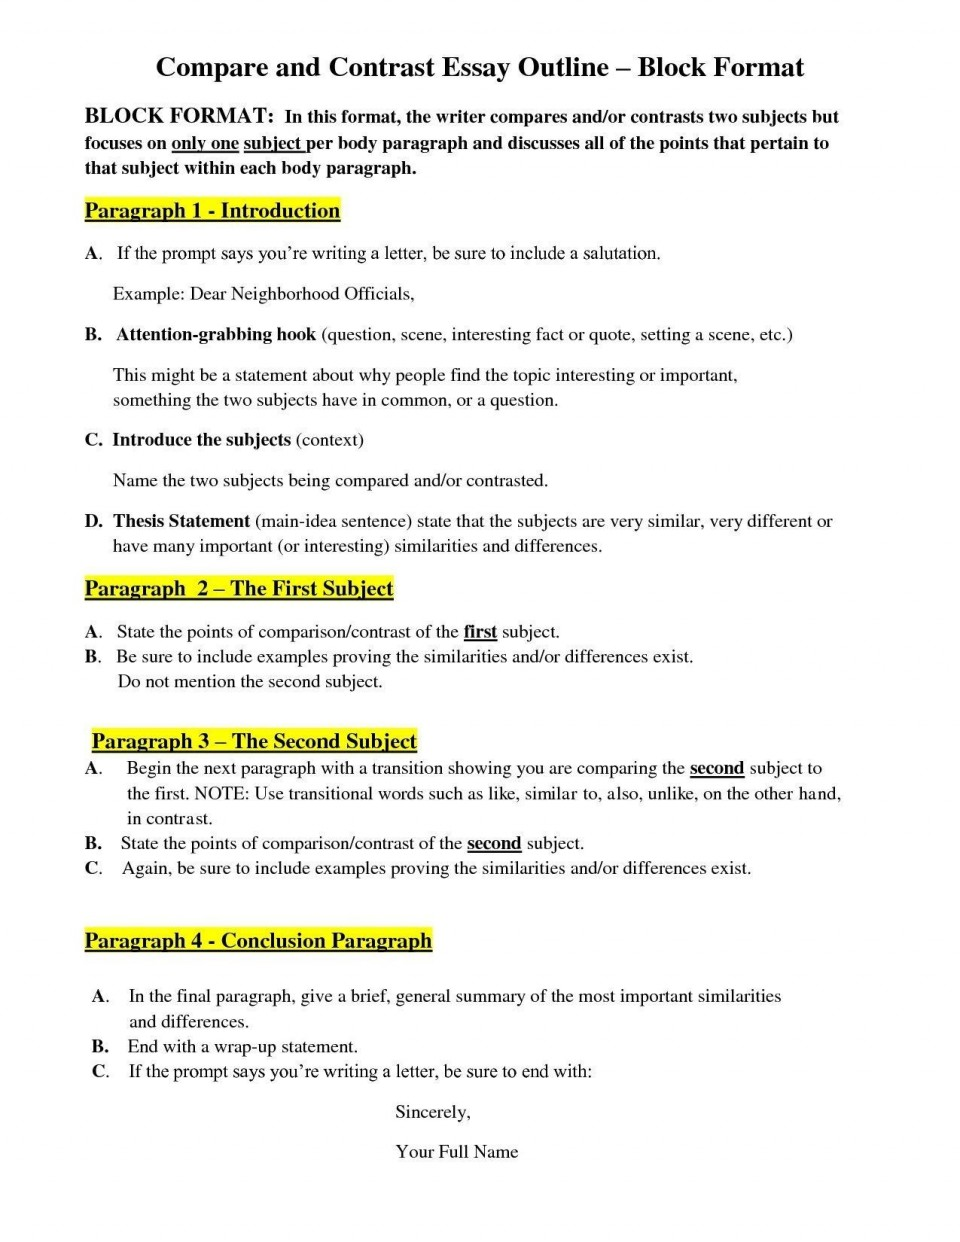 014 Essay Examplempare Andntrastmparison Best Examples Of Scenario In 6th Grade An Goo 3rd Food 5th Middle School Block Format Pdf High 4th Vs Striking Compare And Contrast Example College Level Topics 9th For Students 960